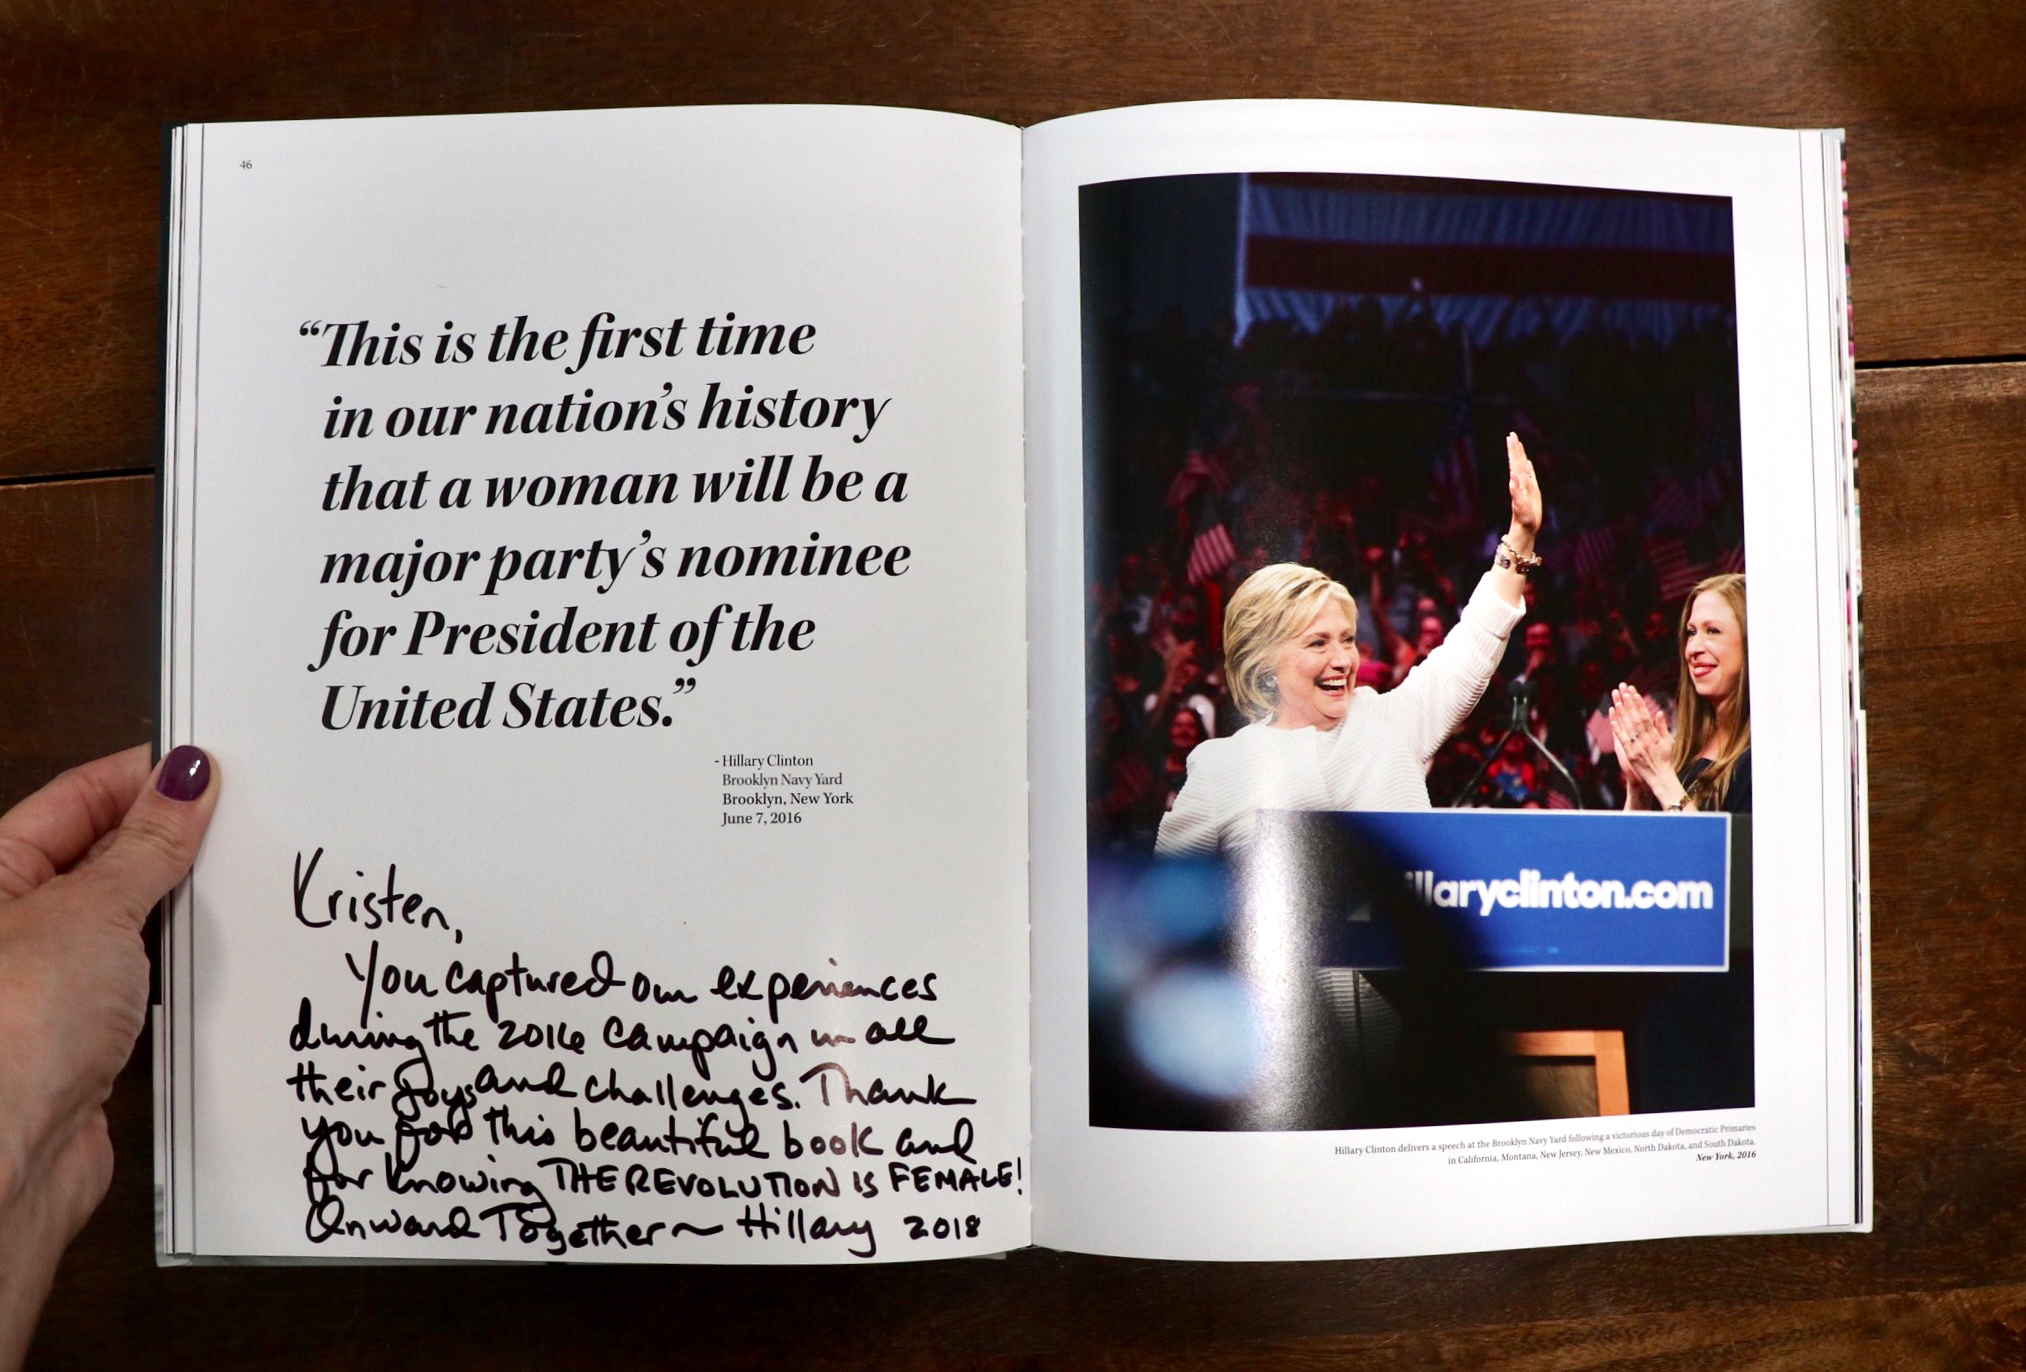 Inspiring words from Hillary Clinton written to Kristen Blush in The Revolution Is Female.